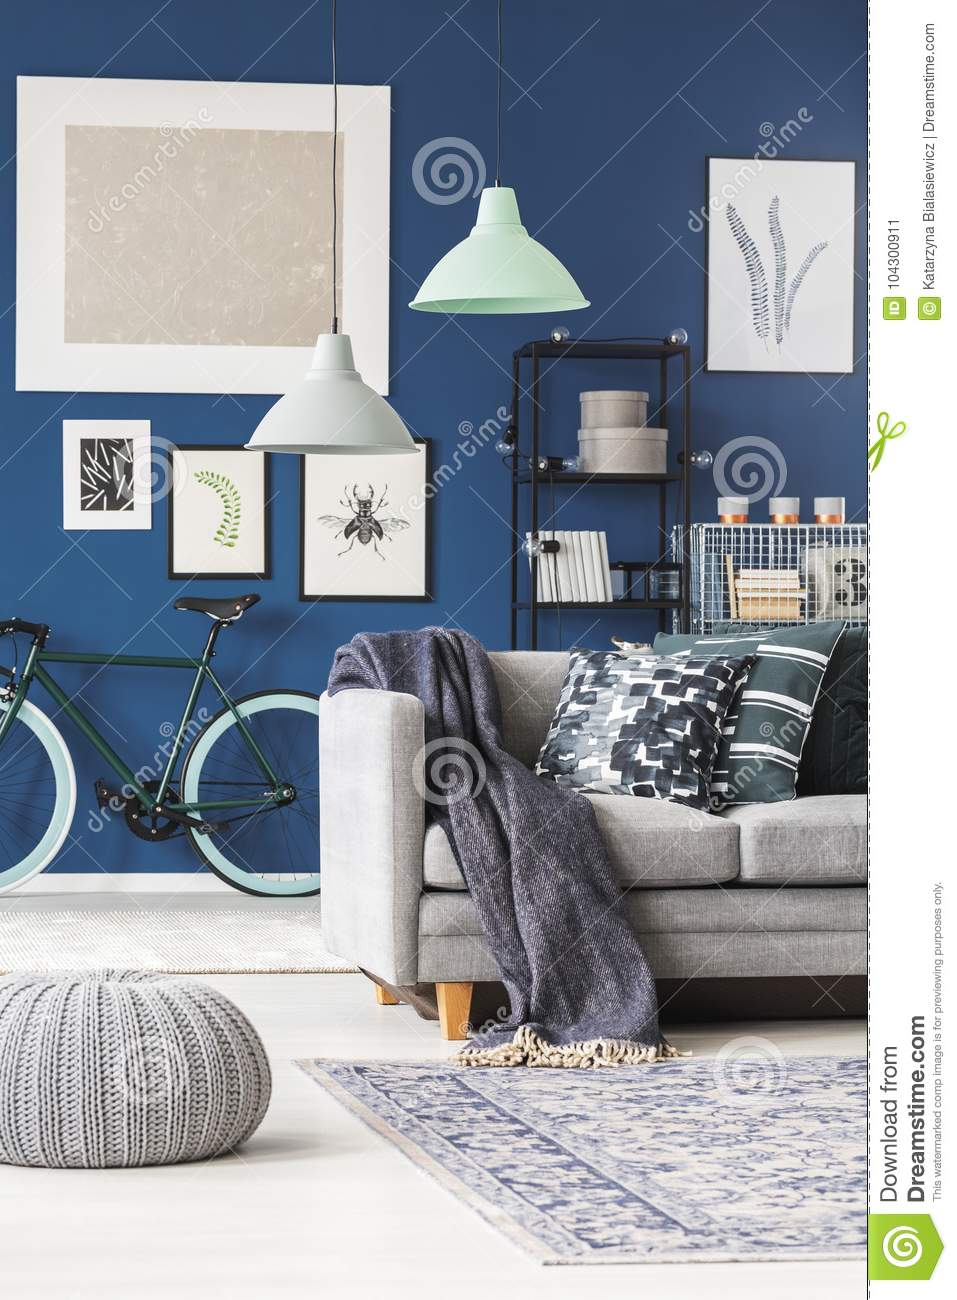 Lamps Above Grey Sofa With Blanket In Living Room Gallery On Dark Blue Wall And Bicycle